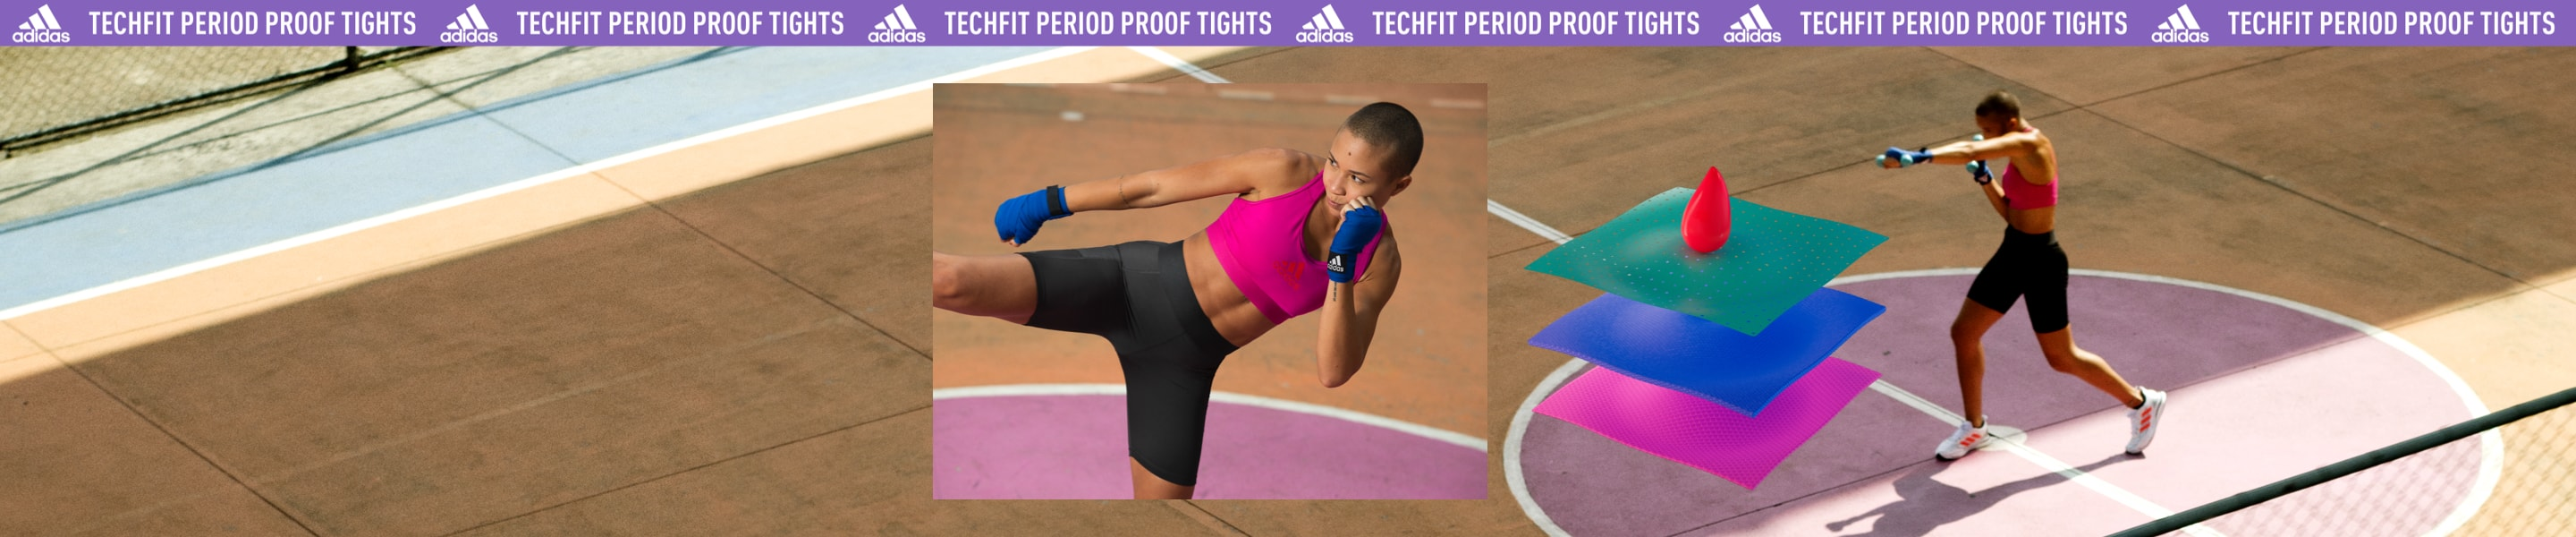 Young Muay Thai athlete Monique trains in the center of a court, wearing the adidas Techfit Period Proof Shorts.